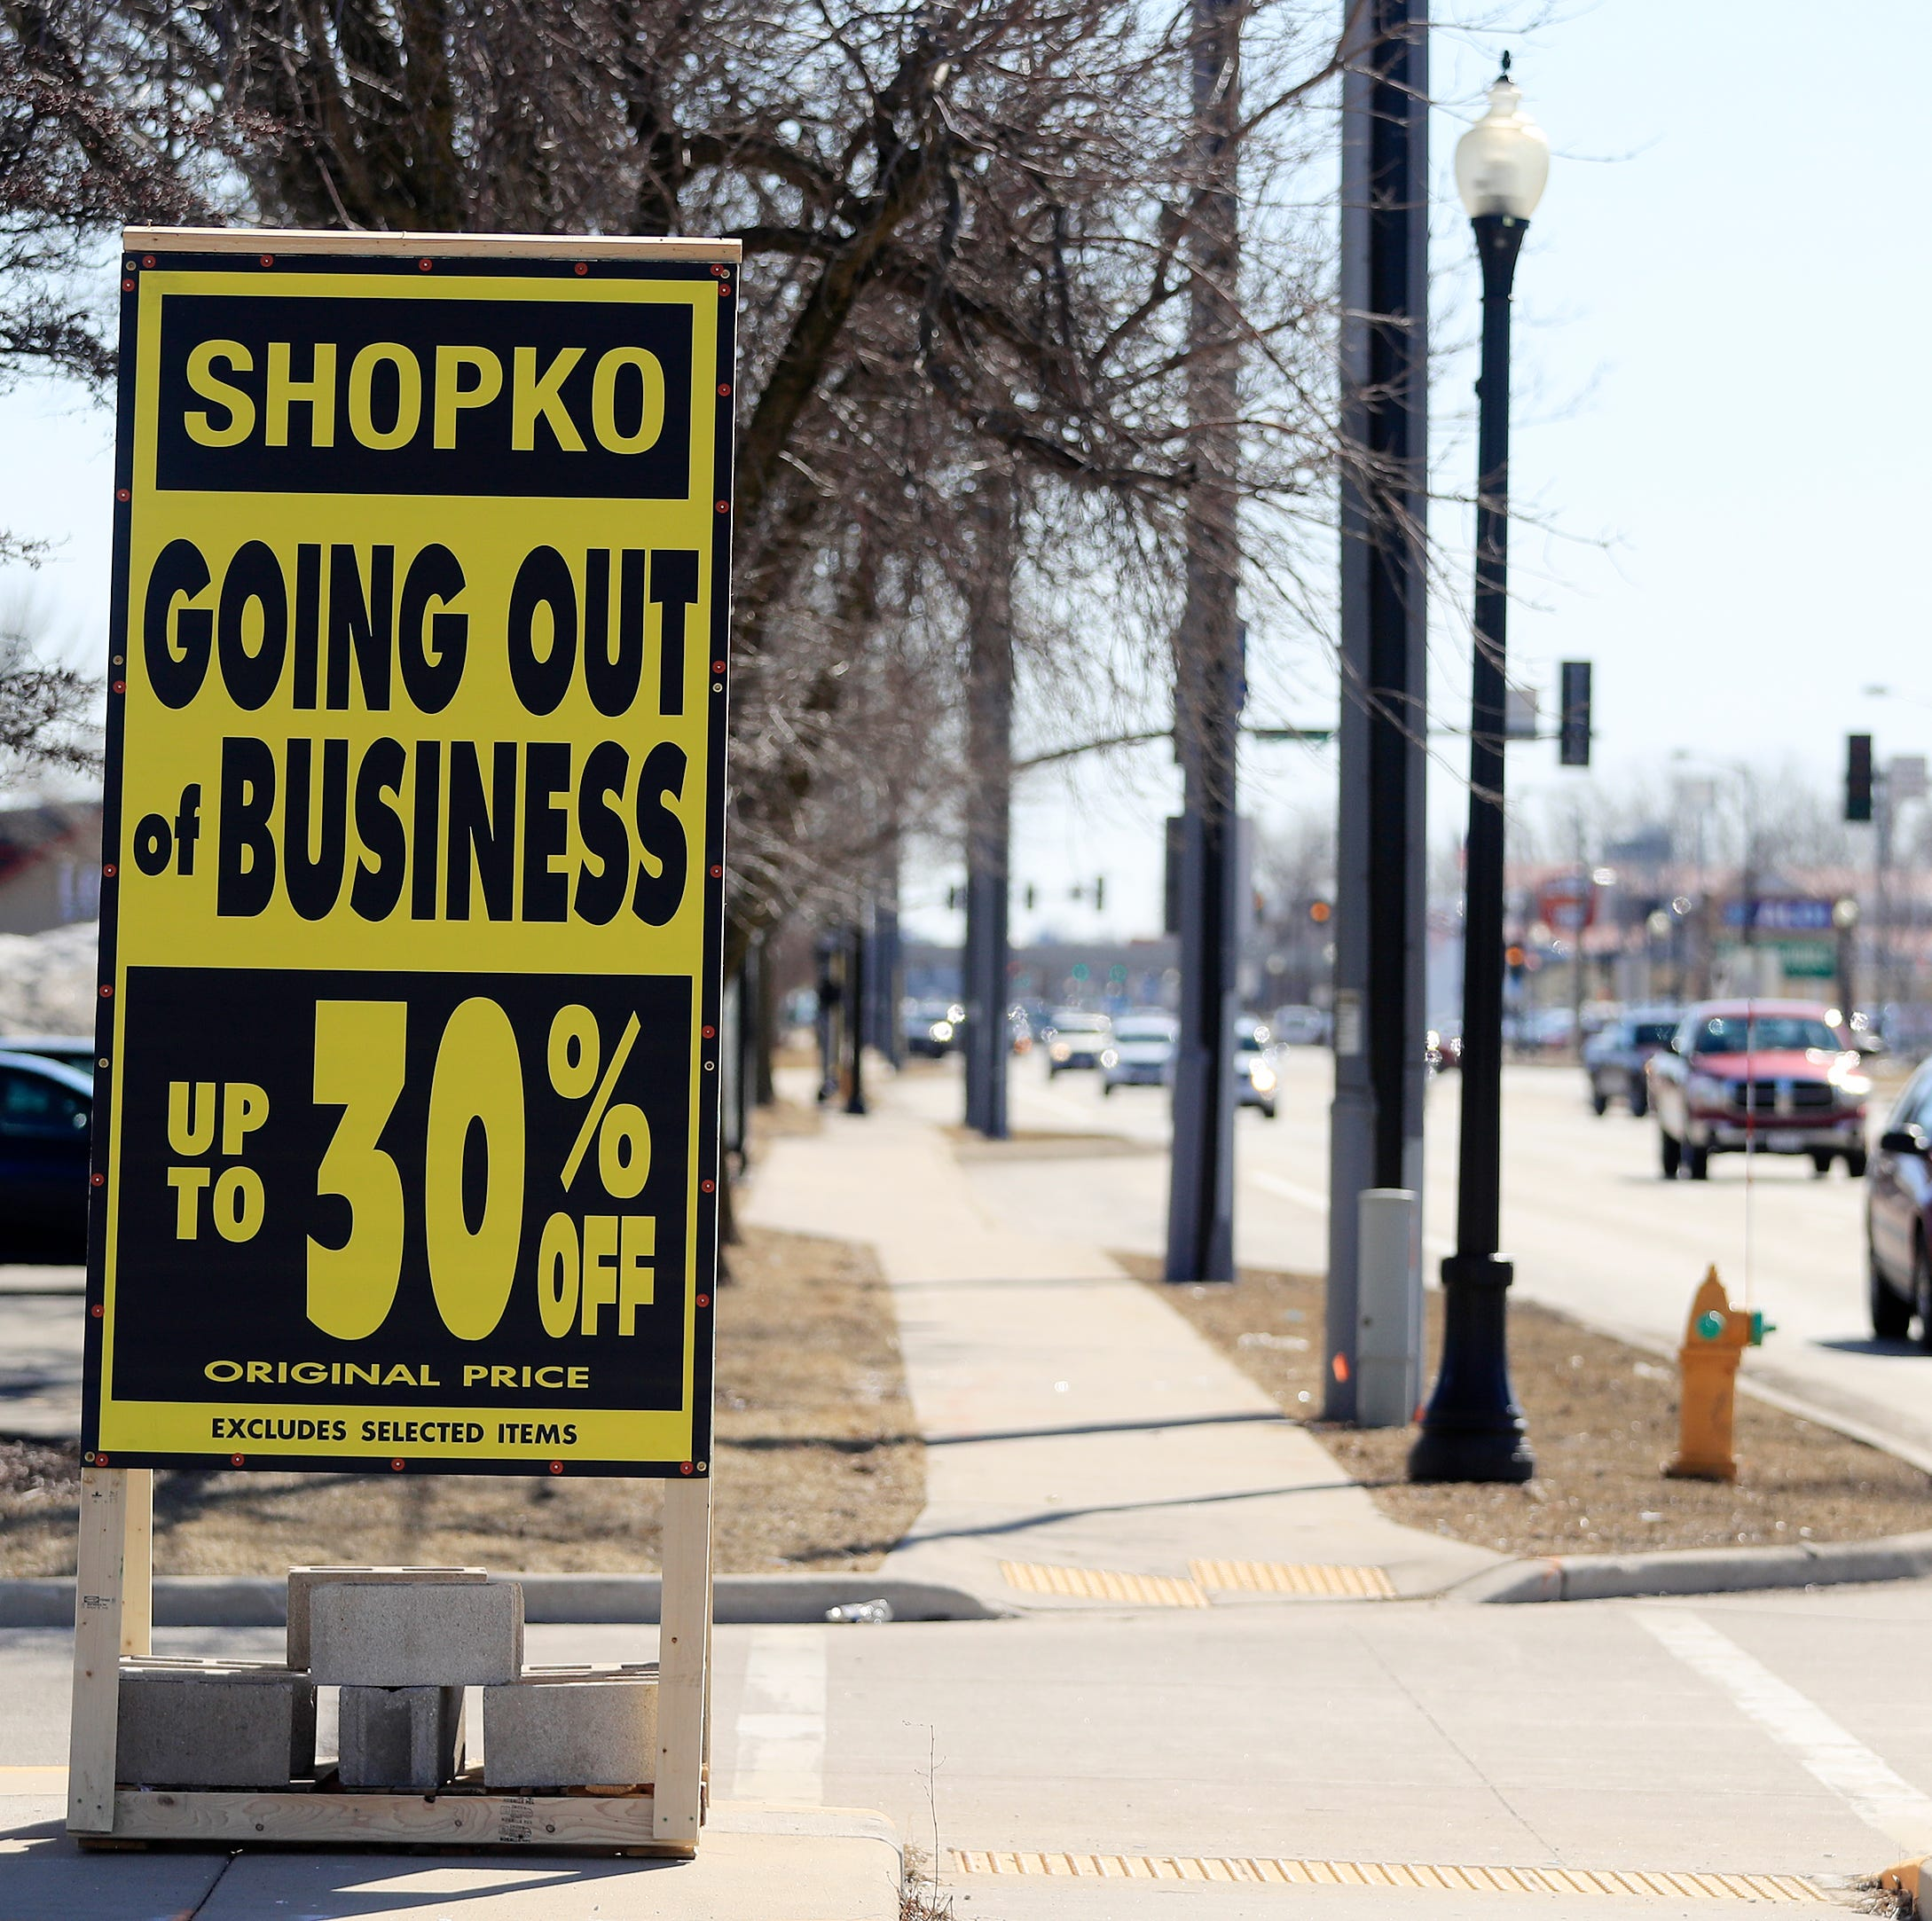 Shopko optical business going up for auction this weekend, sale could spare 700 jobs